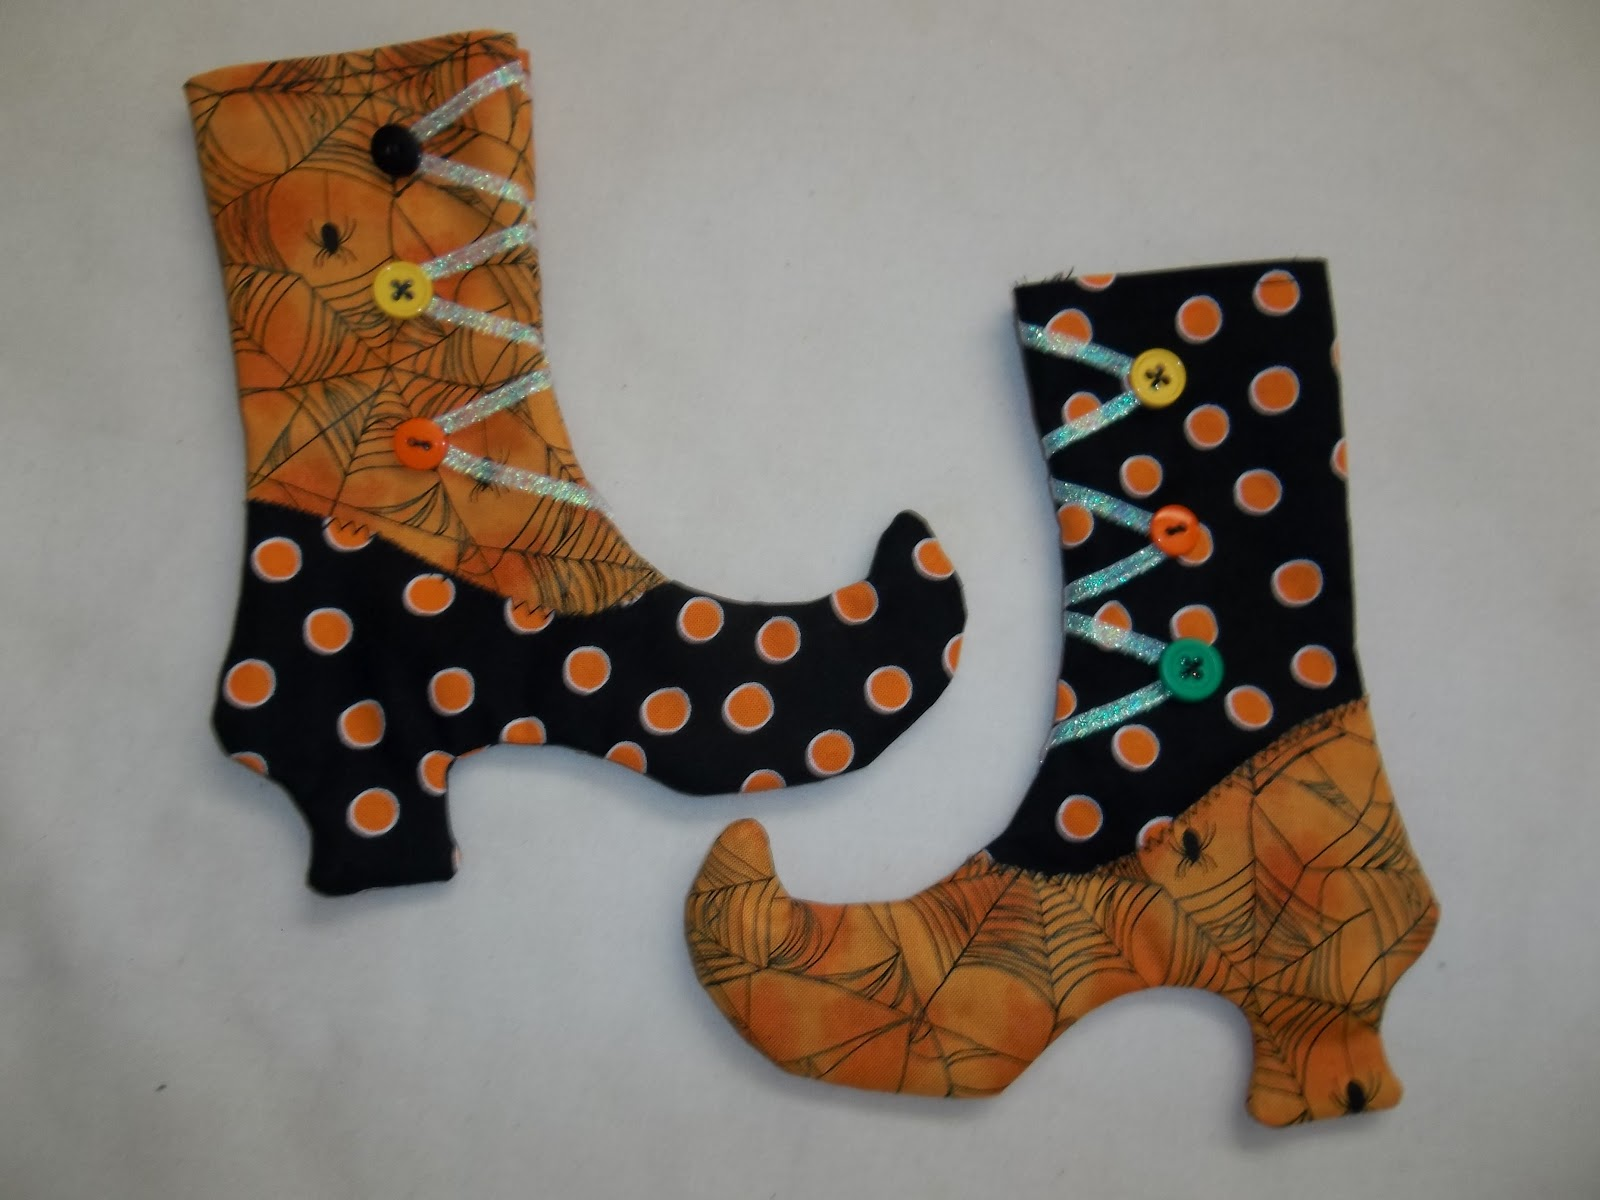 http://sharonsews.blogspot.com/2011/10/tutorial-sew-witch-stocking-shoe-treat.html